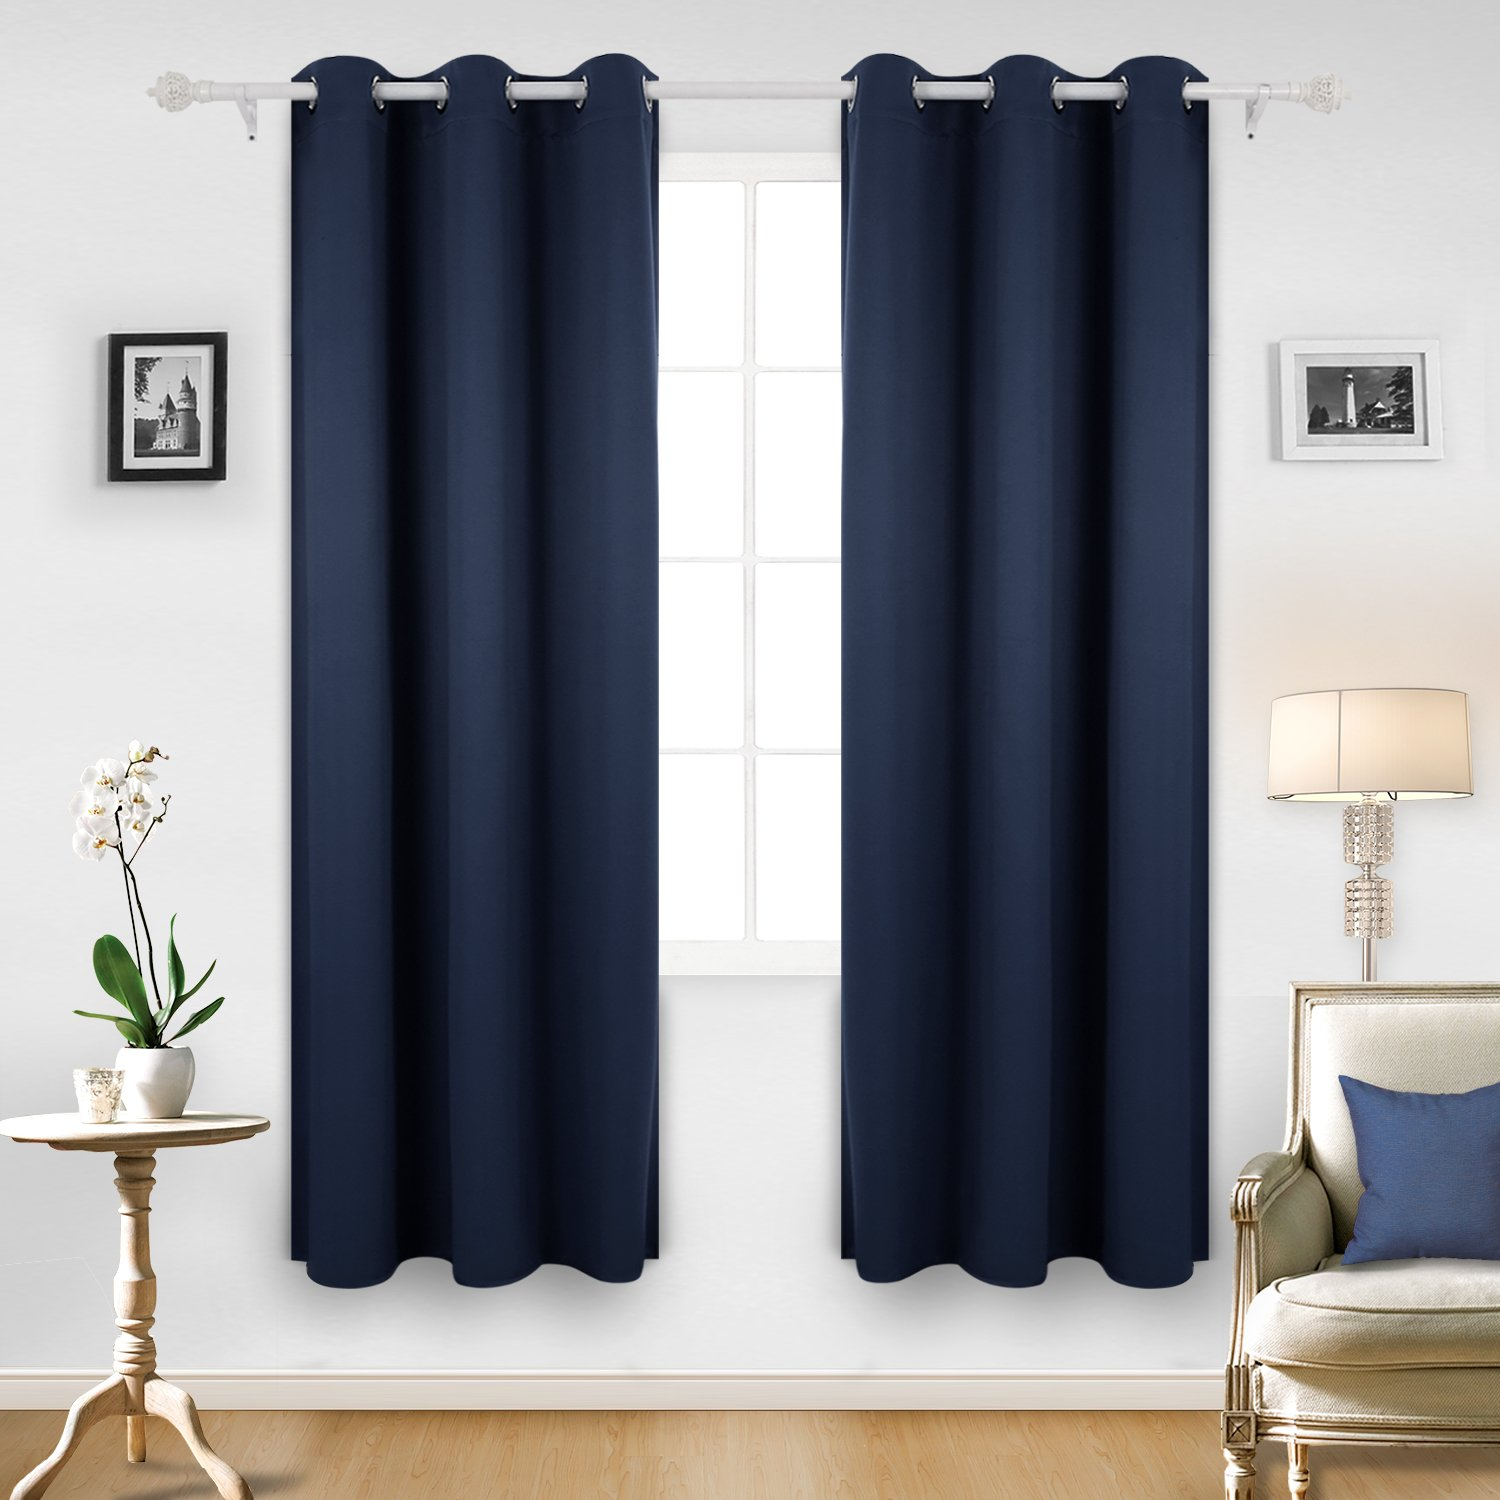 Blackout Blue Navy Blue Thermal Curtains Sale Ease